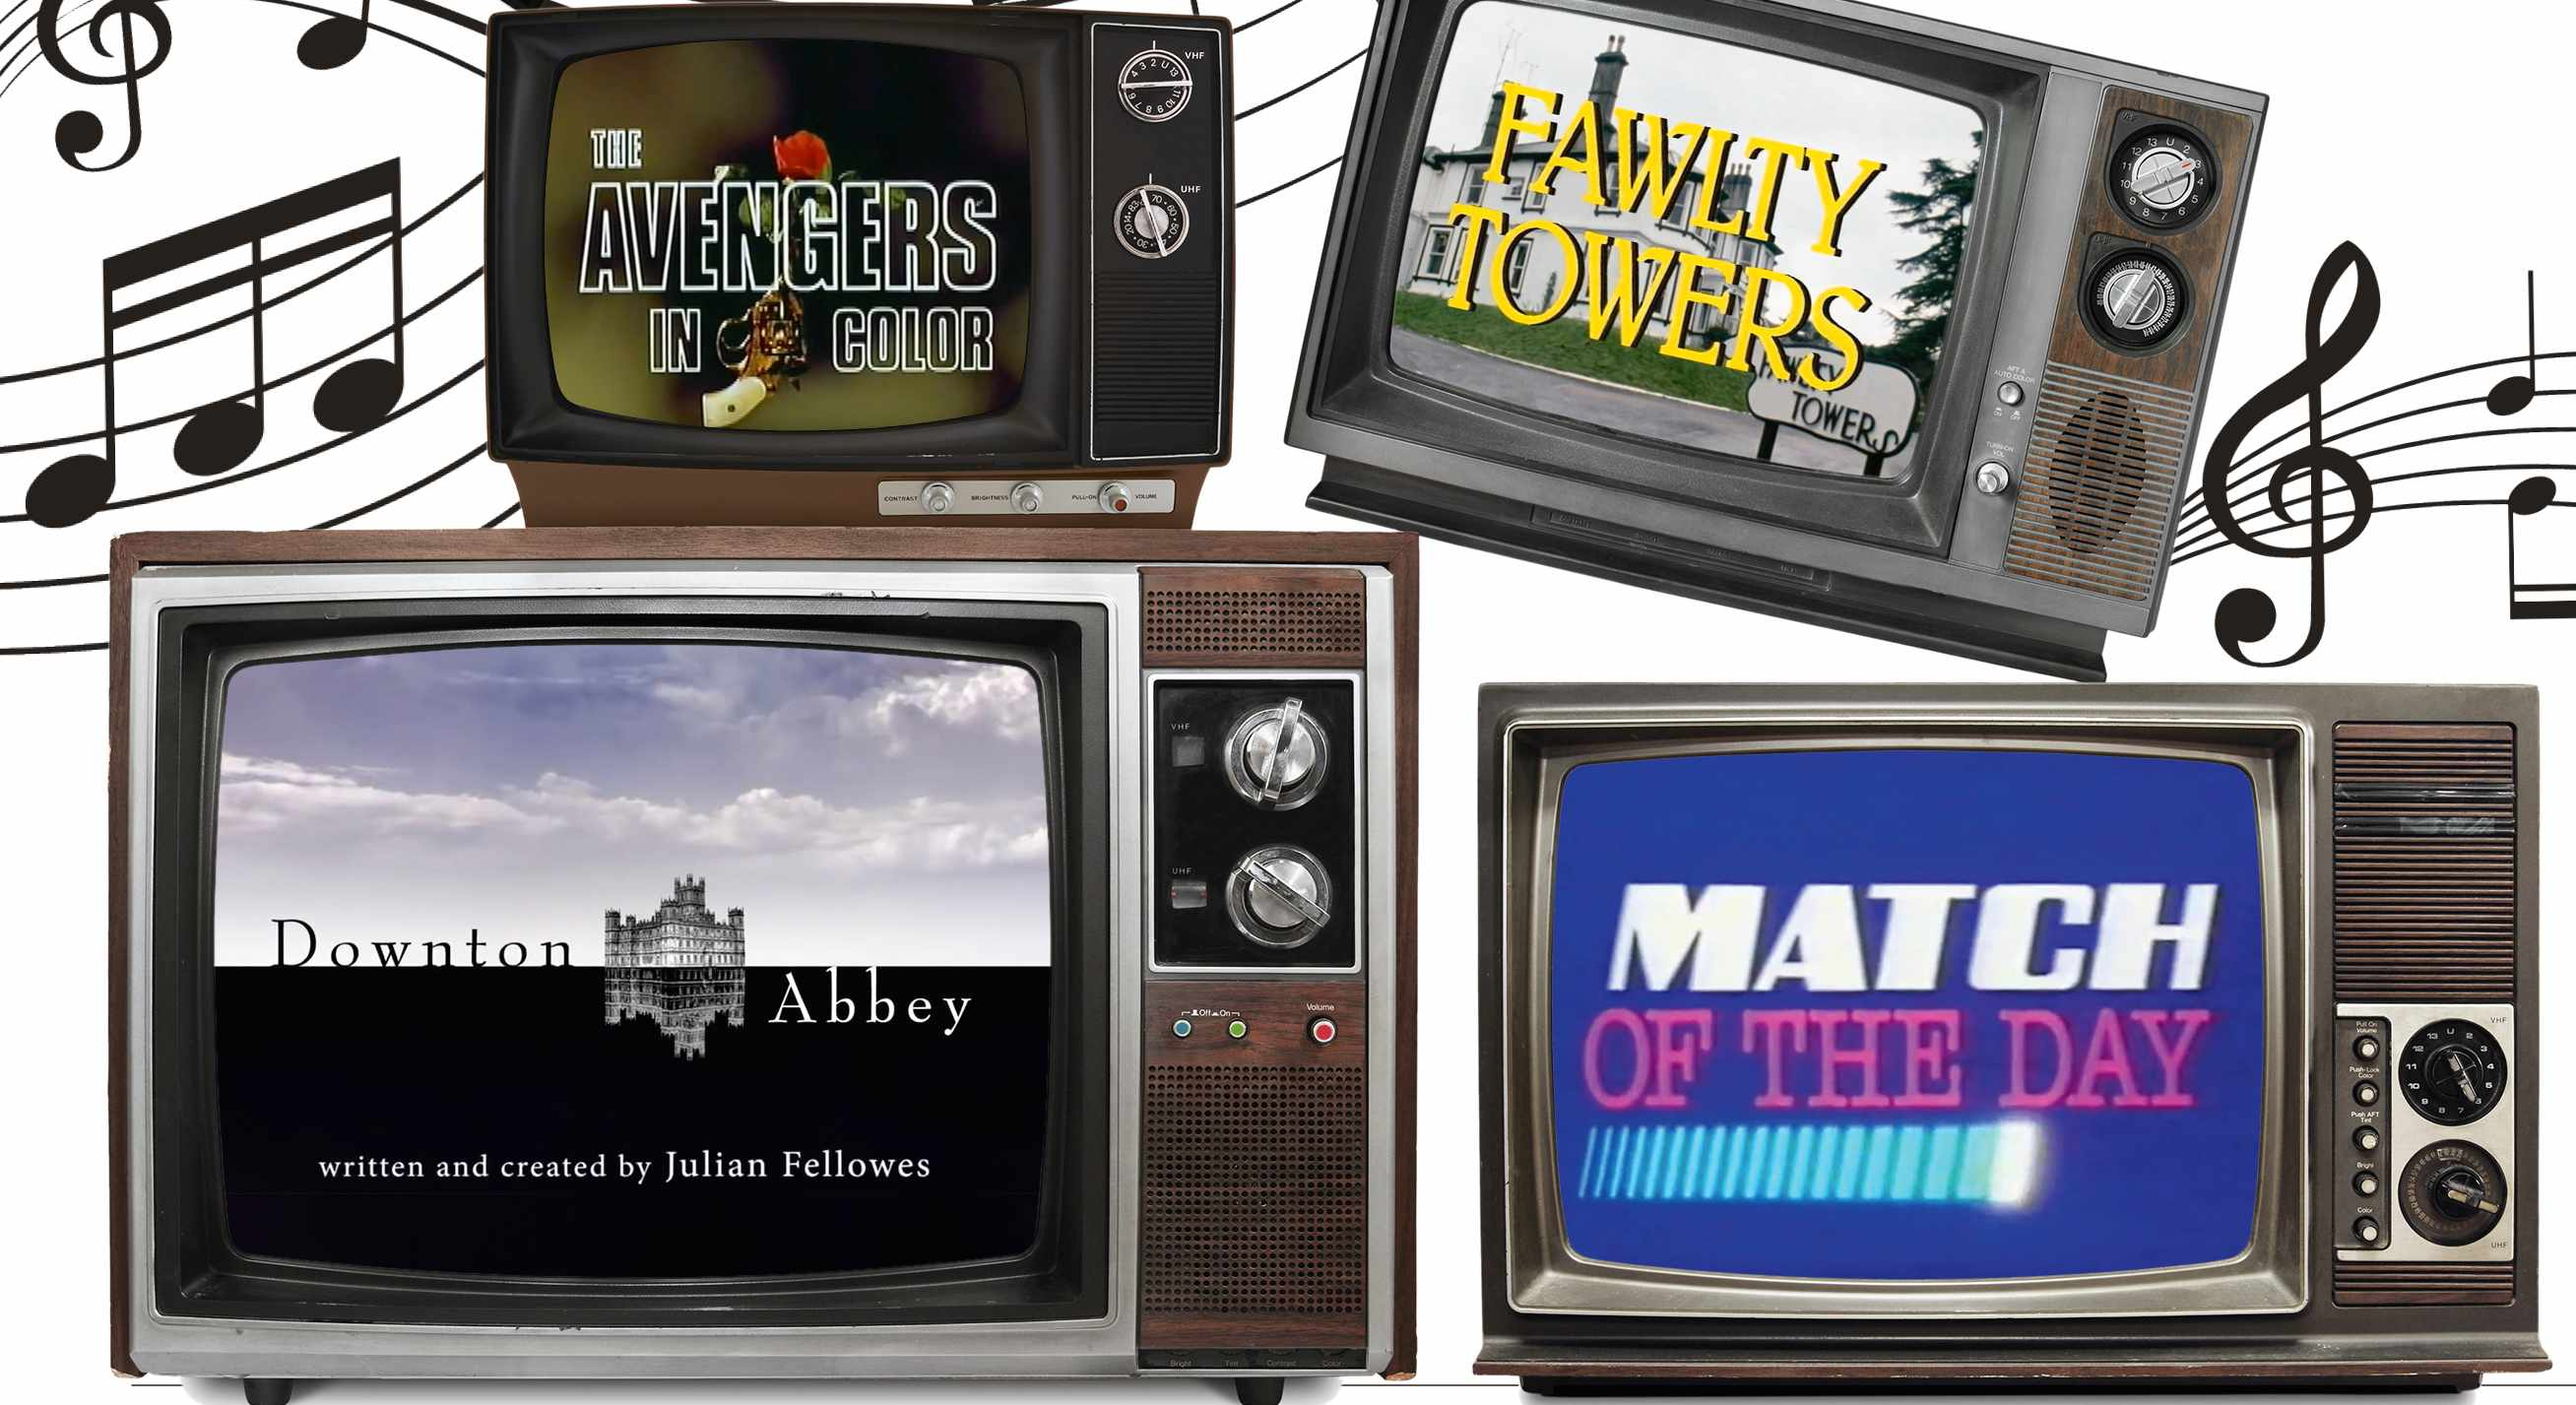 Radio Times TV theme vote